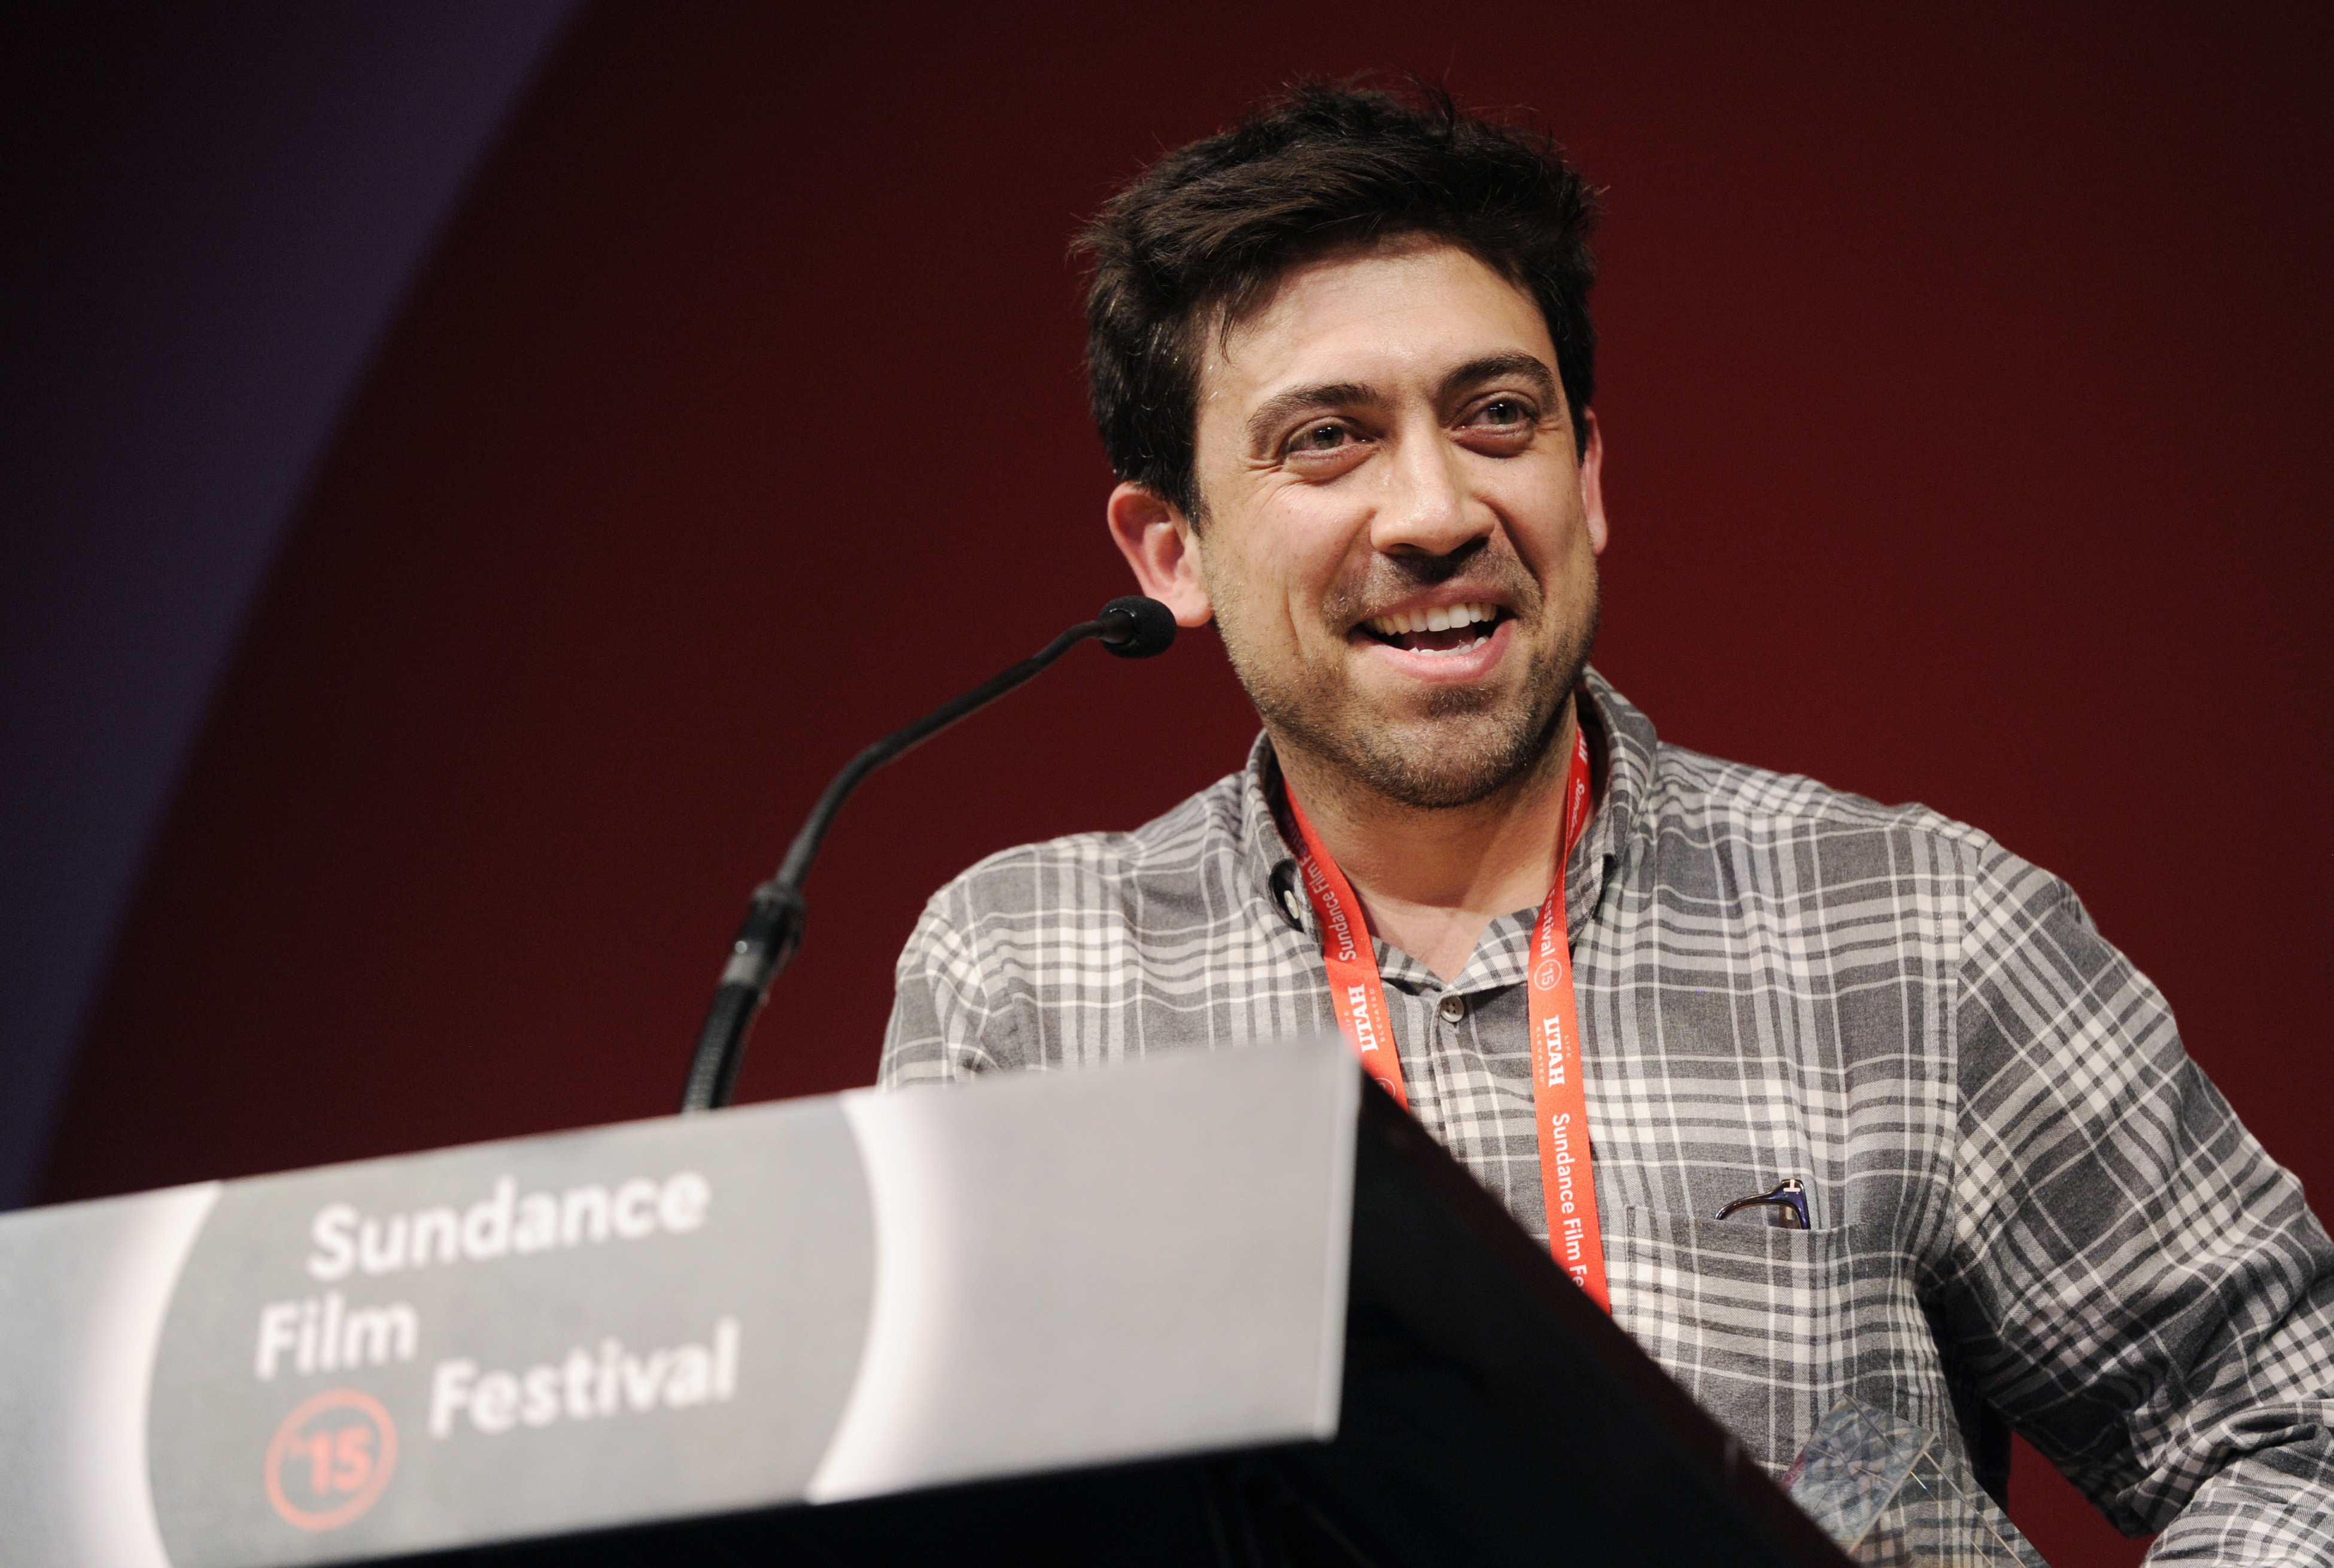 Alfonso Gomez-Rejon, director of  Me and Earl and the Dying Girl,  accepts the U.S. Dramatic Grand Jury Prize for the film during the 2015 Sundance Film Festival Awards Ceremony on Saturday, Jan. 31, 2015, in Park City, Utah.